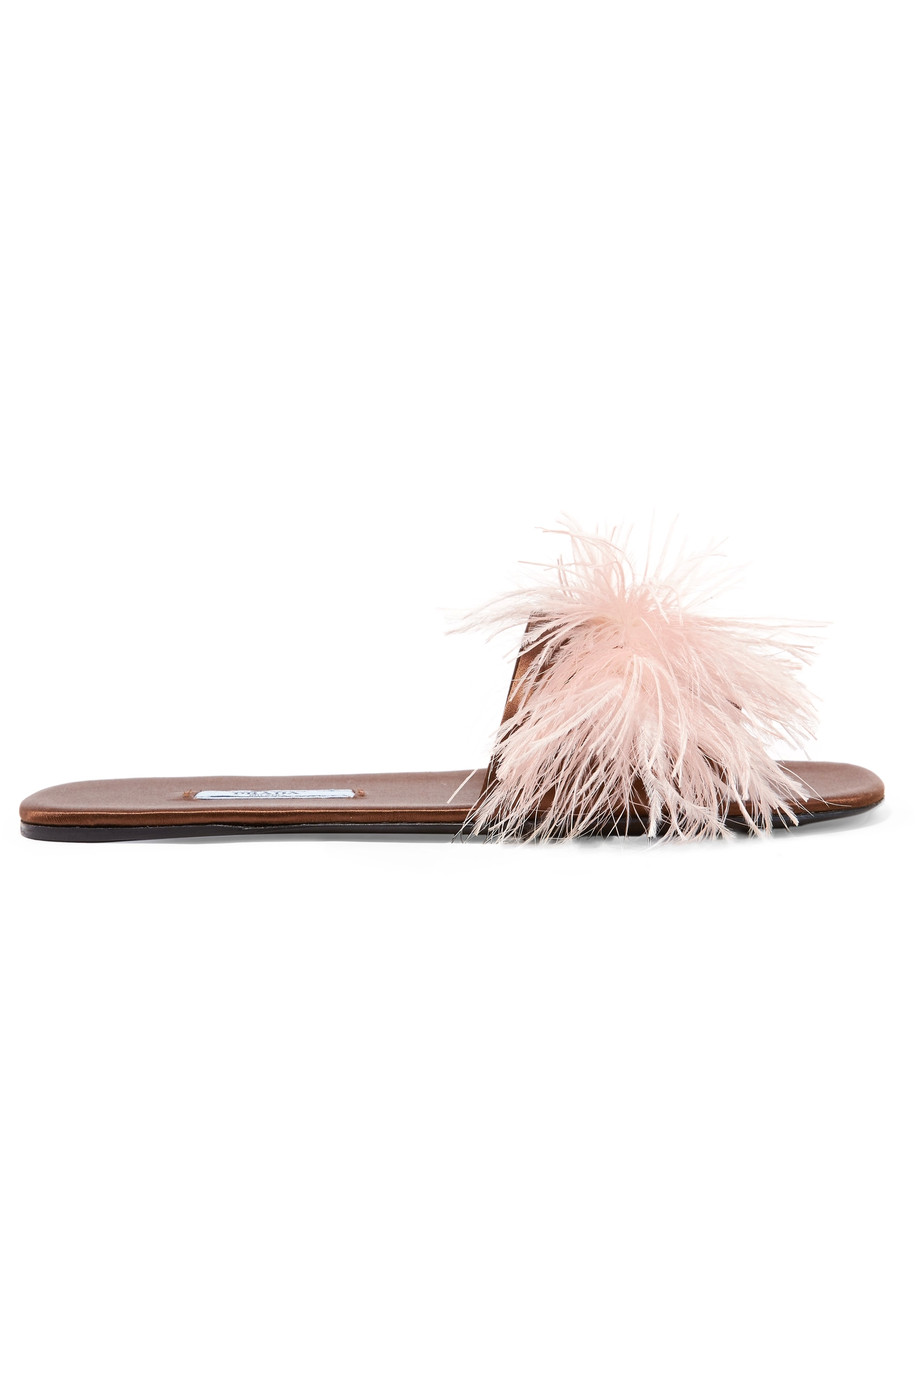 PRADA Feather-embellished satin slides £490 netaporter.com